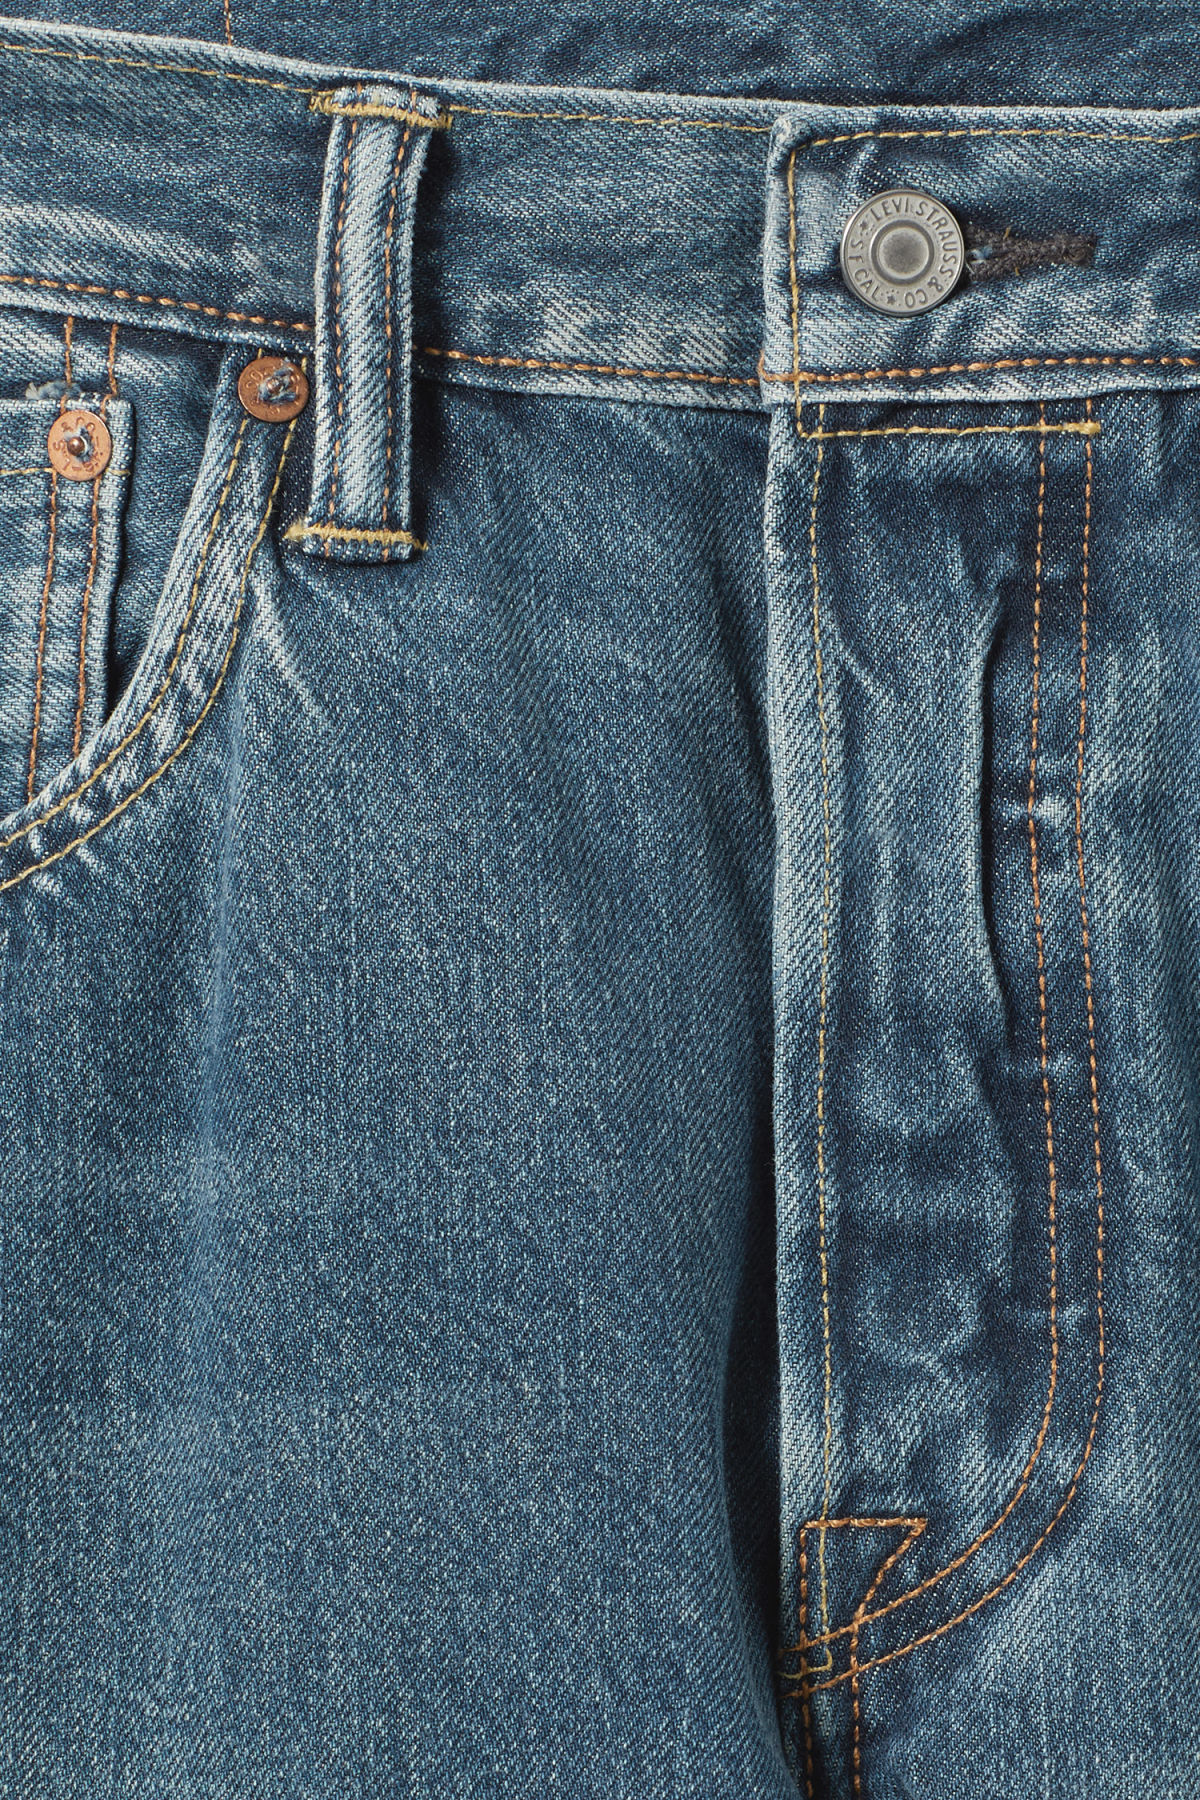 Detailed image of Weekday 501 original electric ave jeans in blue